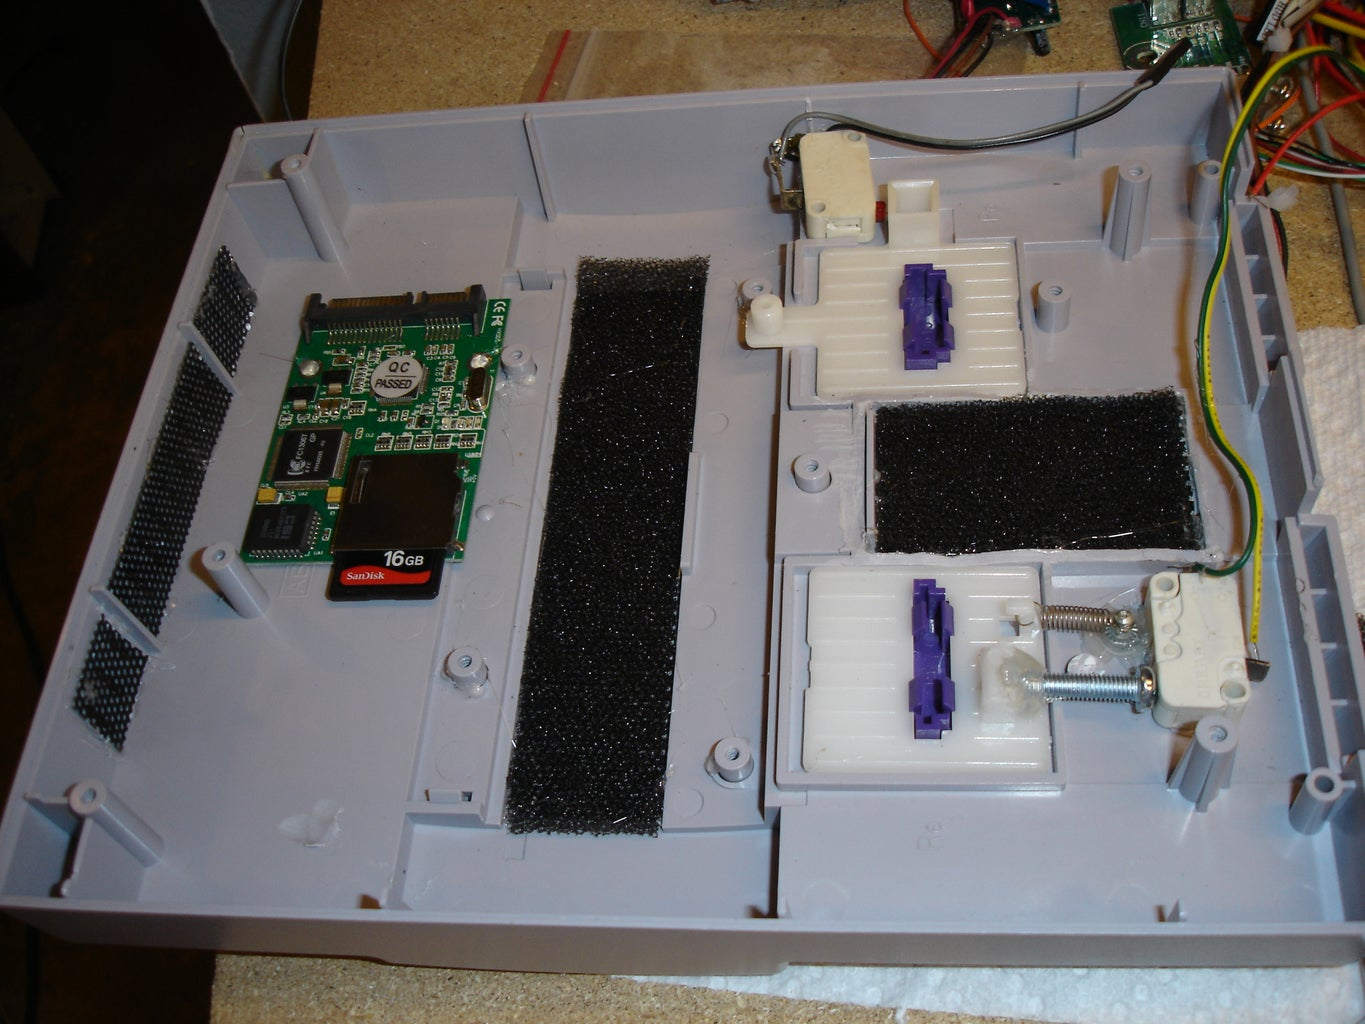 Add Switches and Vents, and Hard Drive